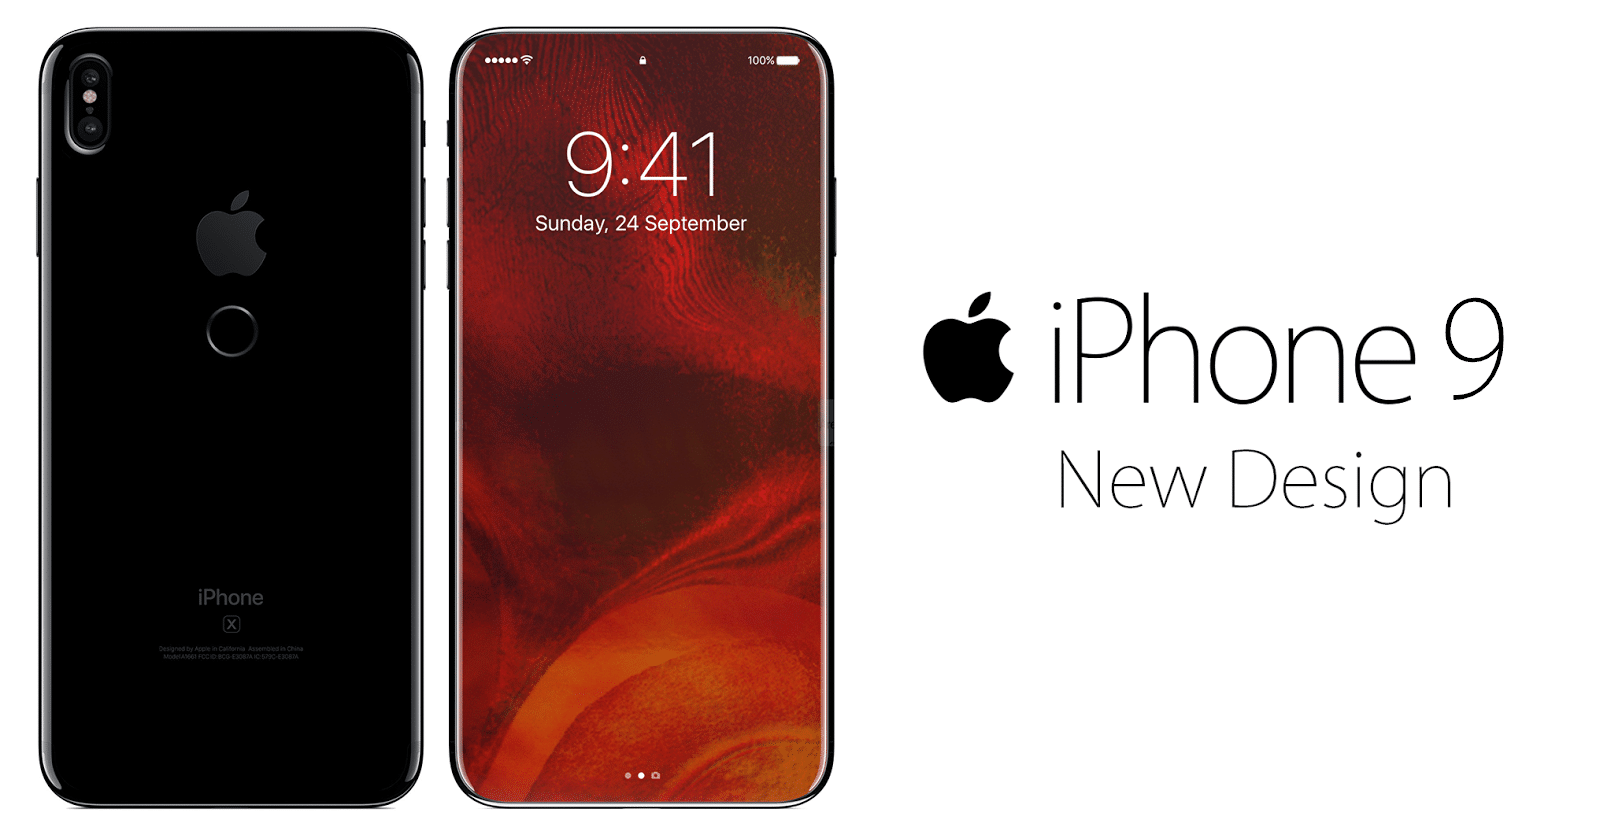 apple iphone launch in september 2018